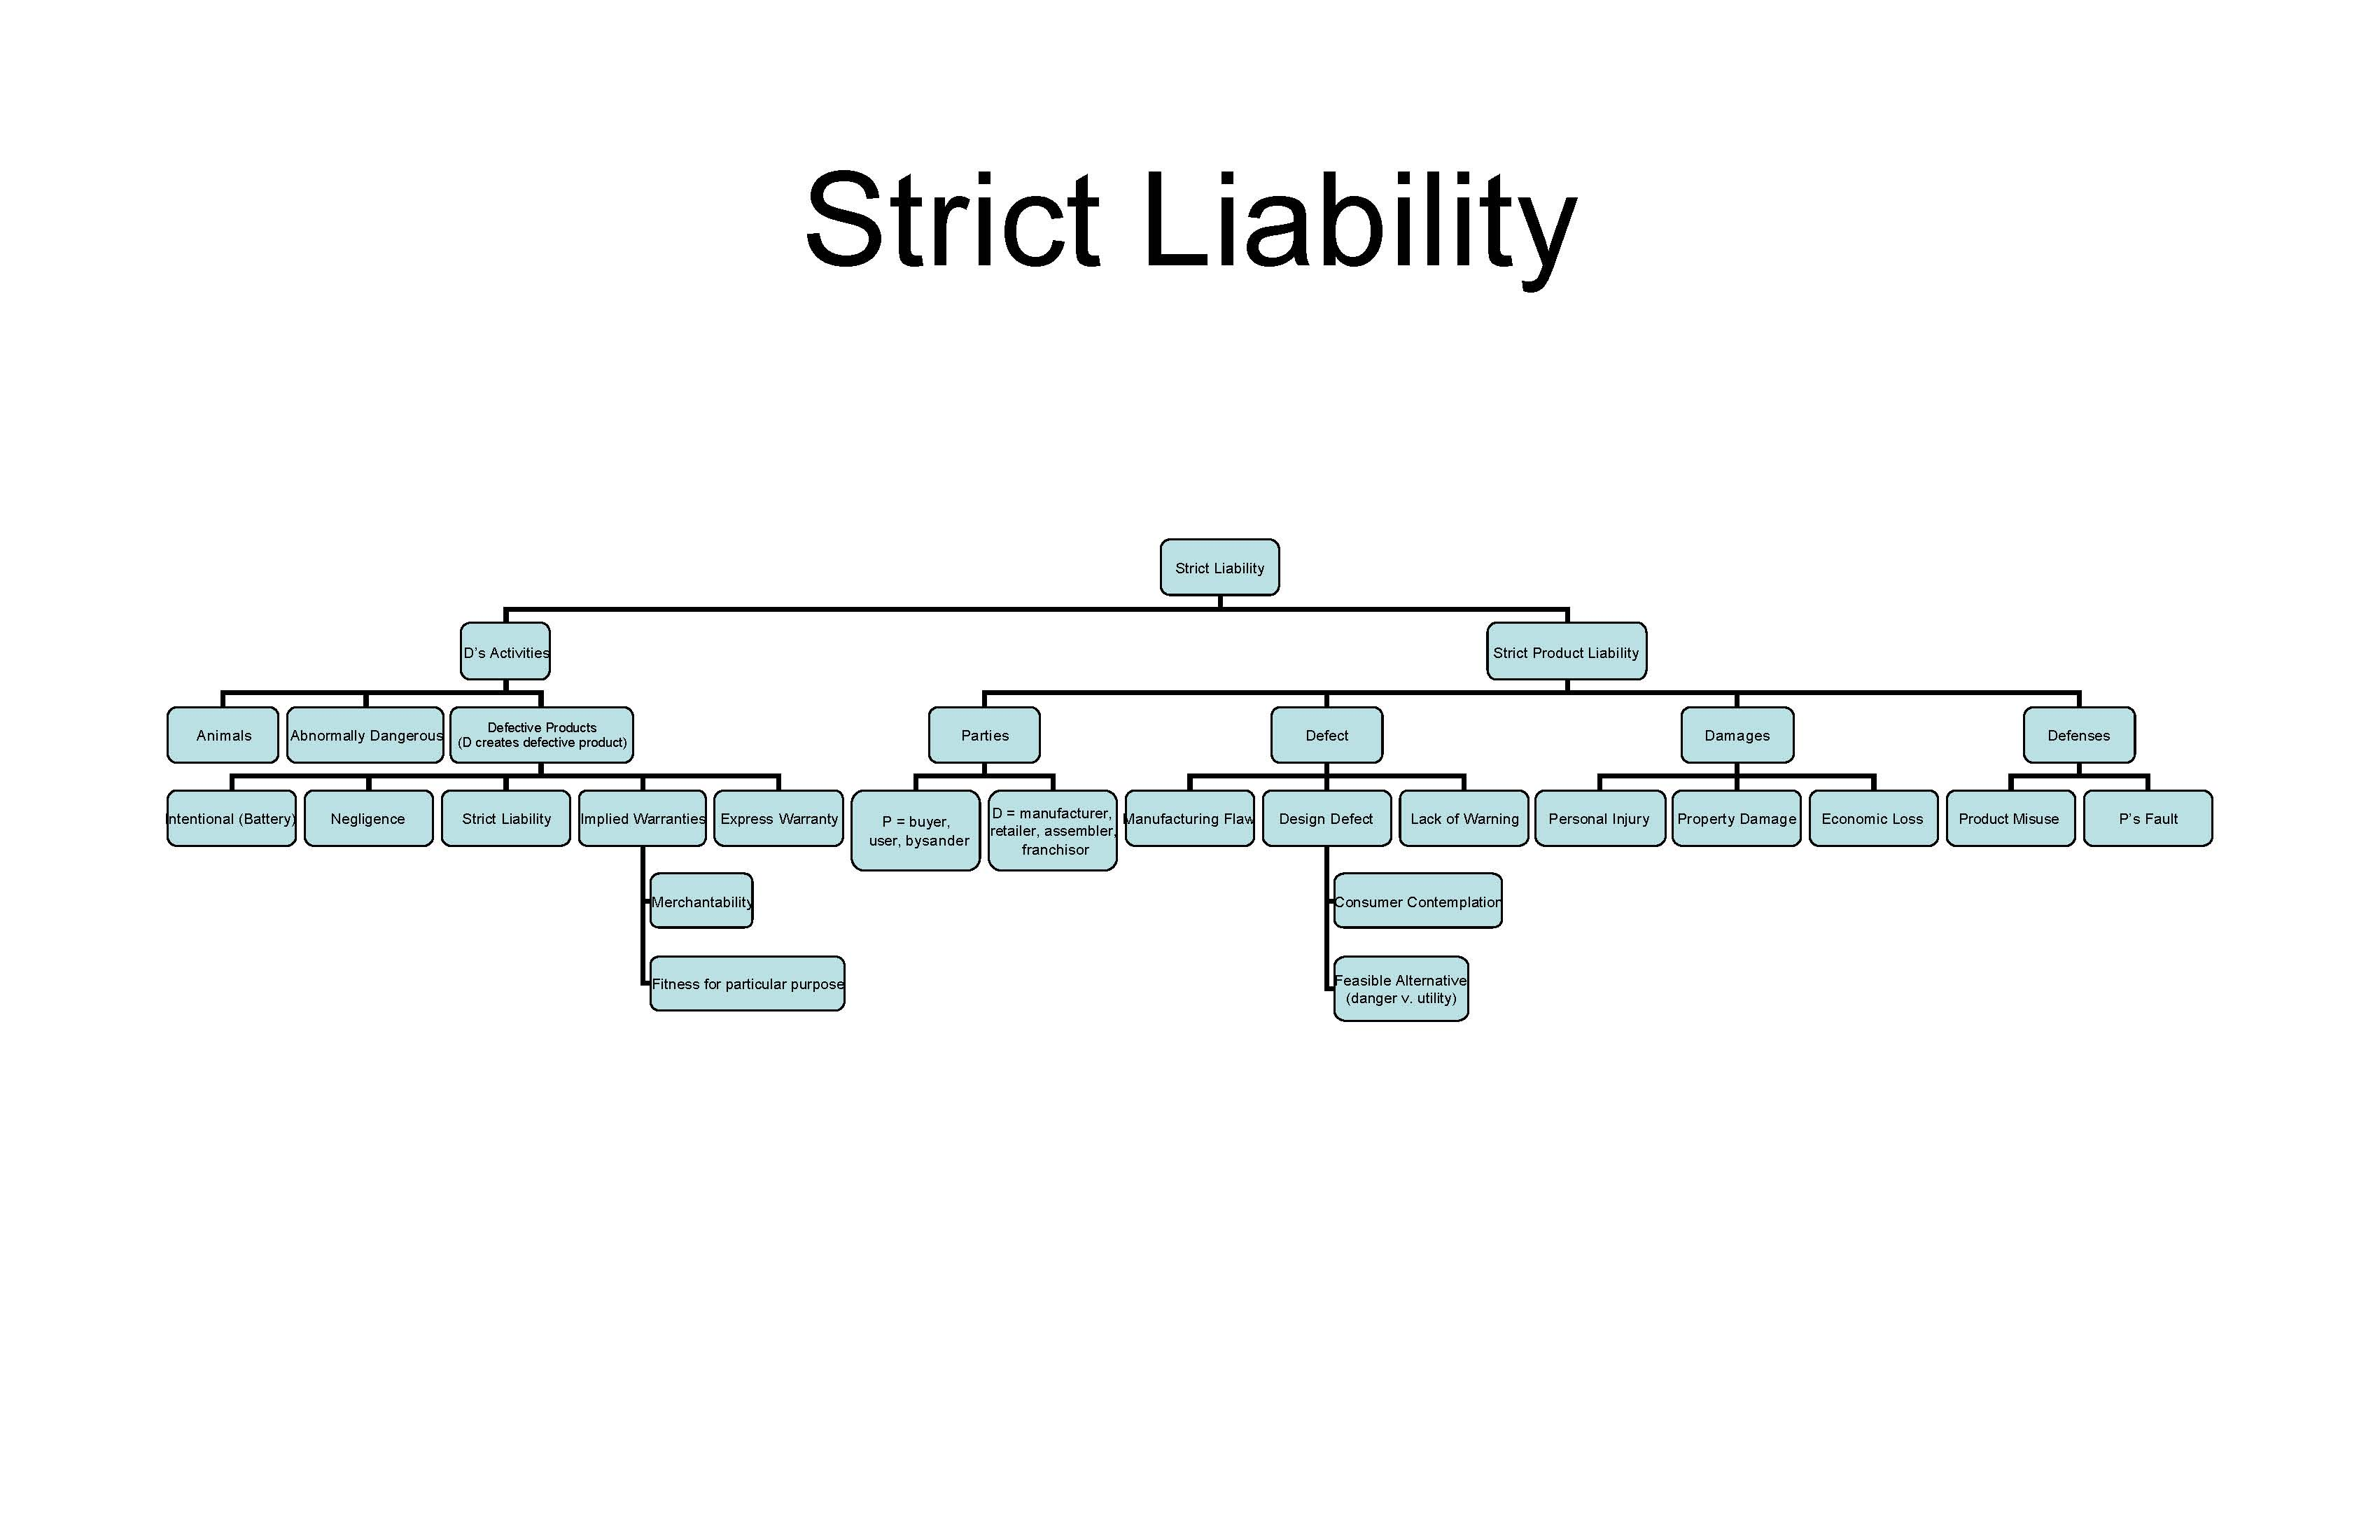 Strict Liability Comprehensive Review Chart.jpg